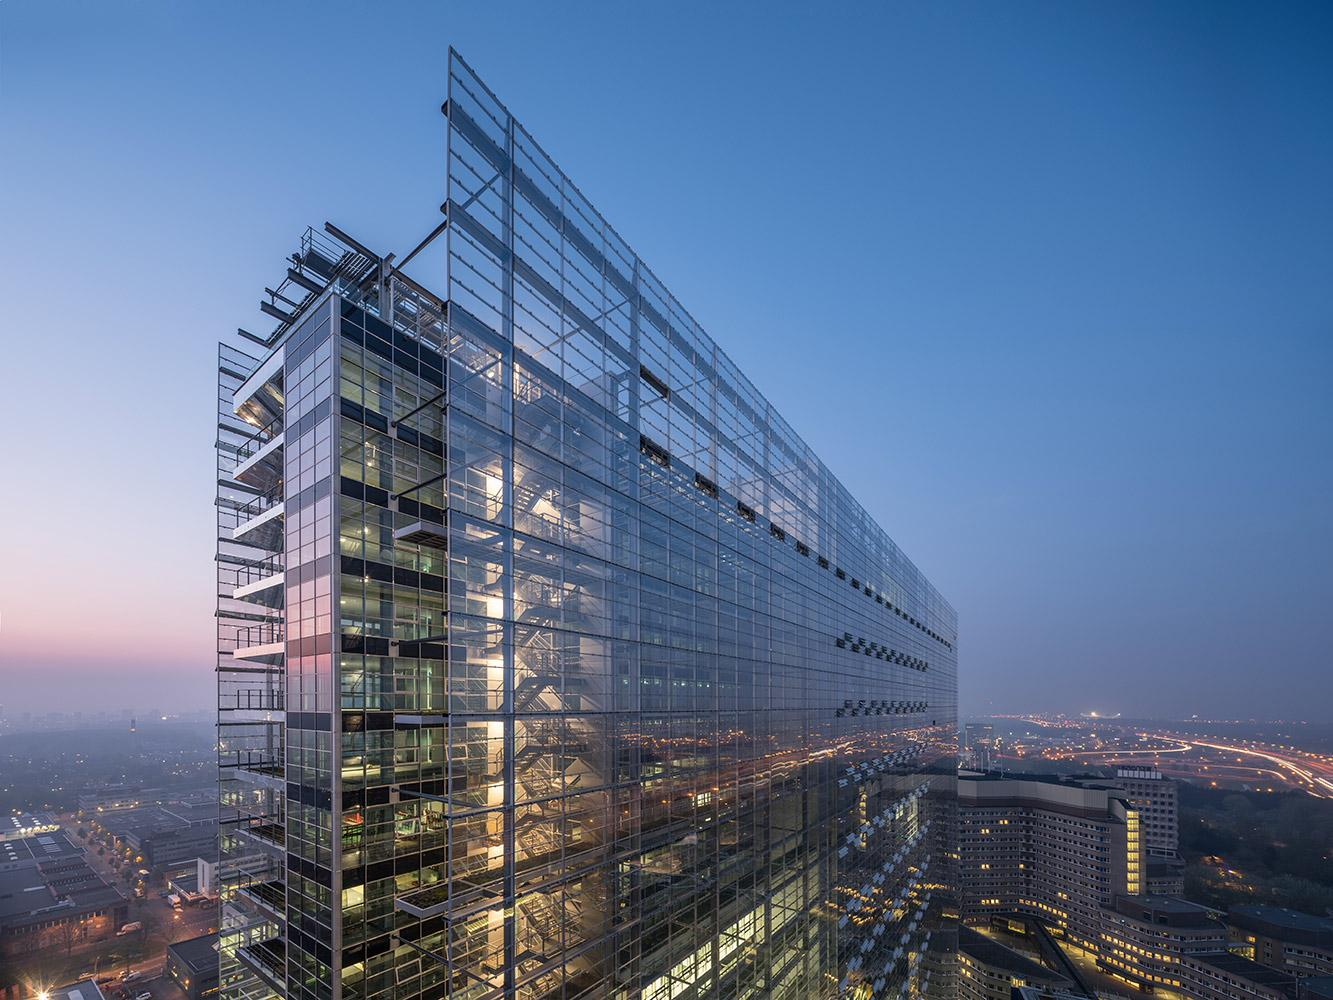 The European Patent Office in Rijswijk designed by Ateliers Jean Nouvel and Dam & Partners Architecten